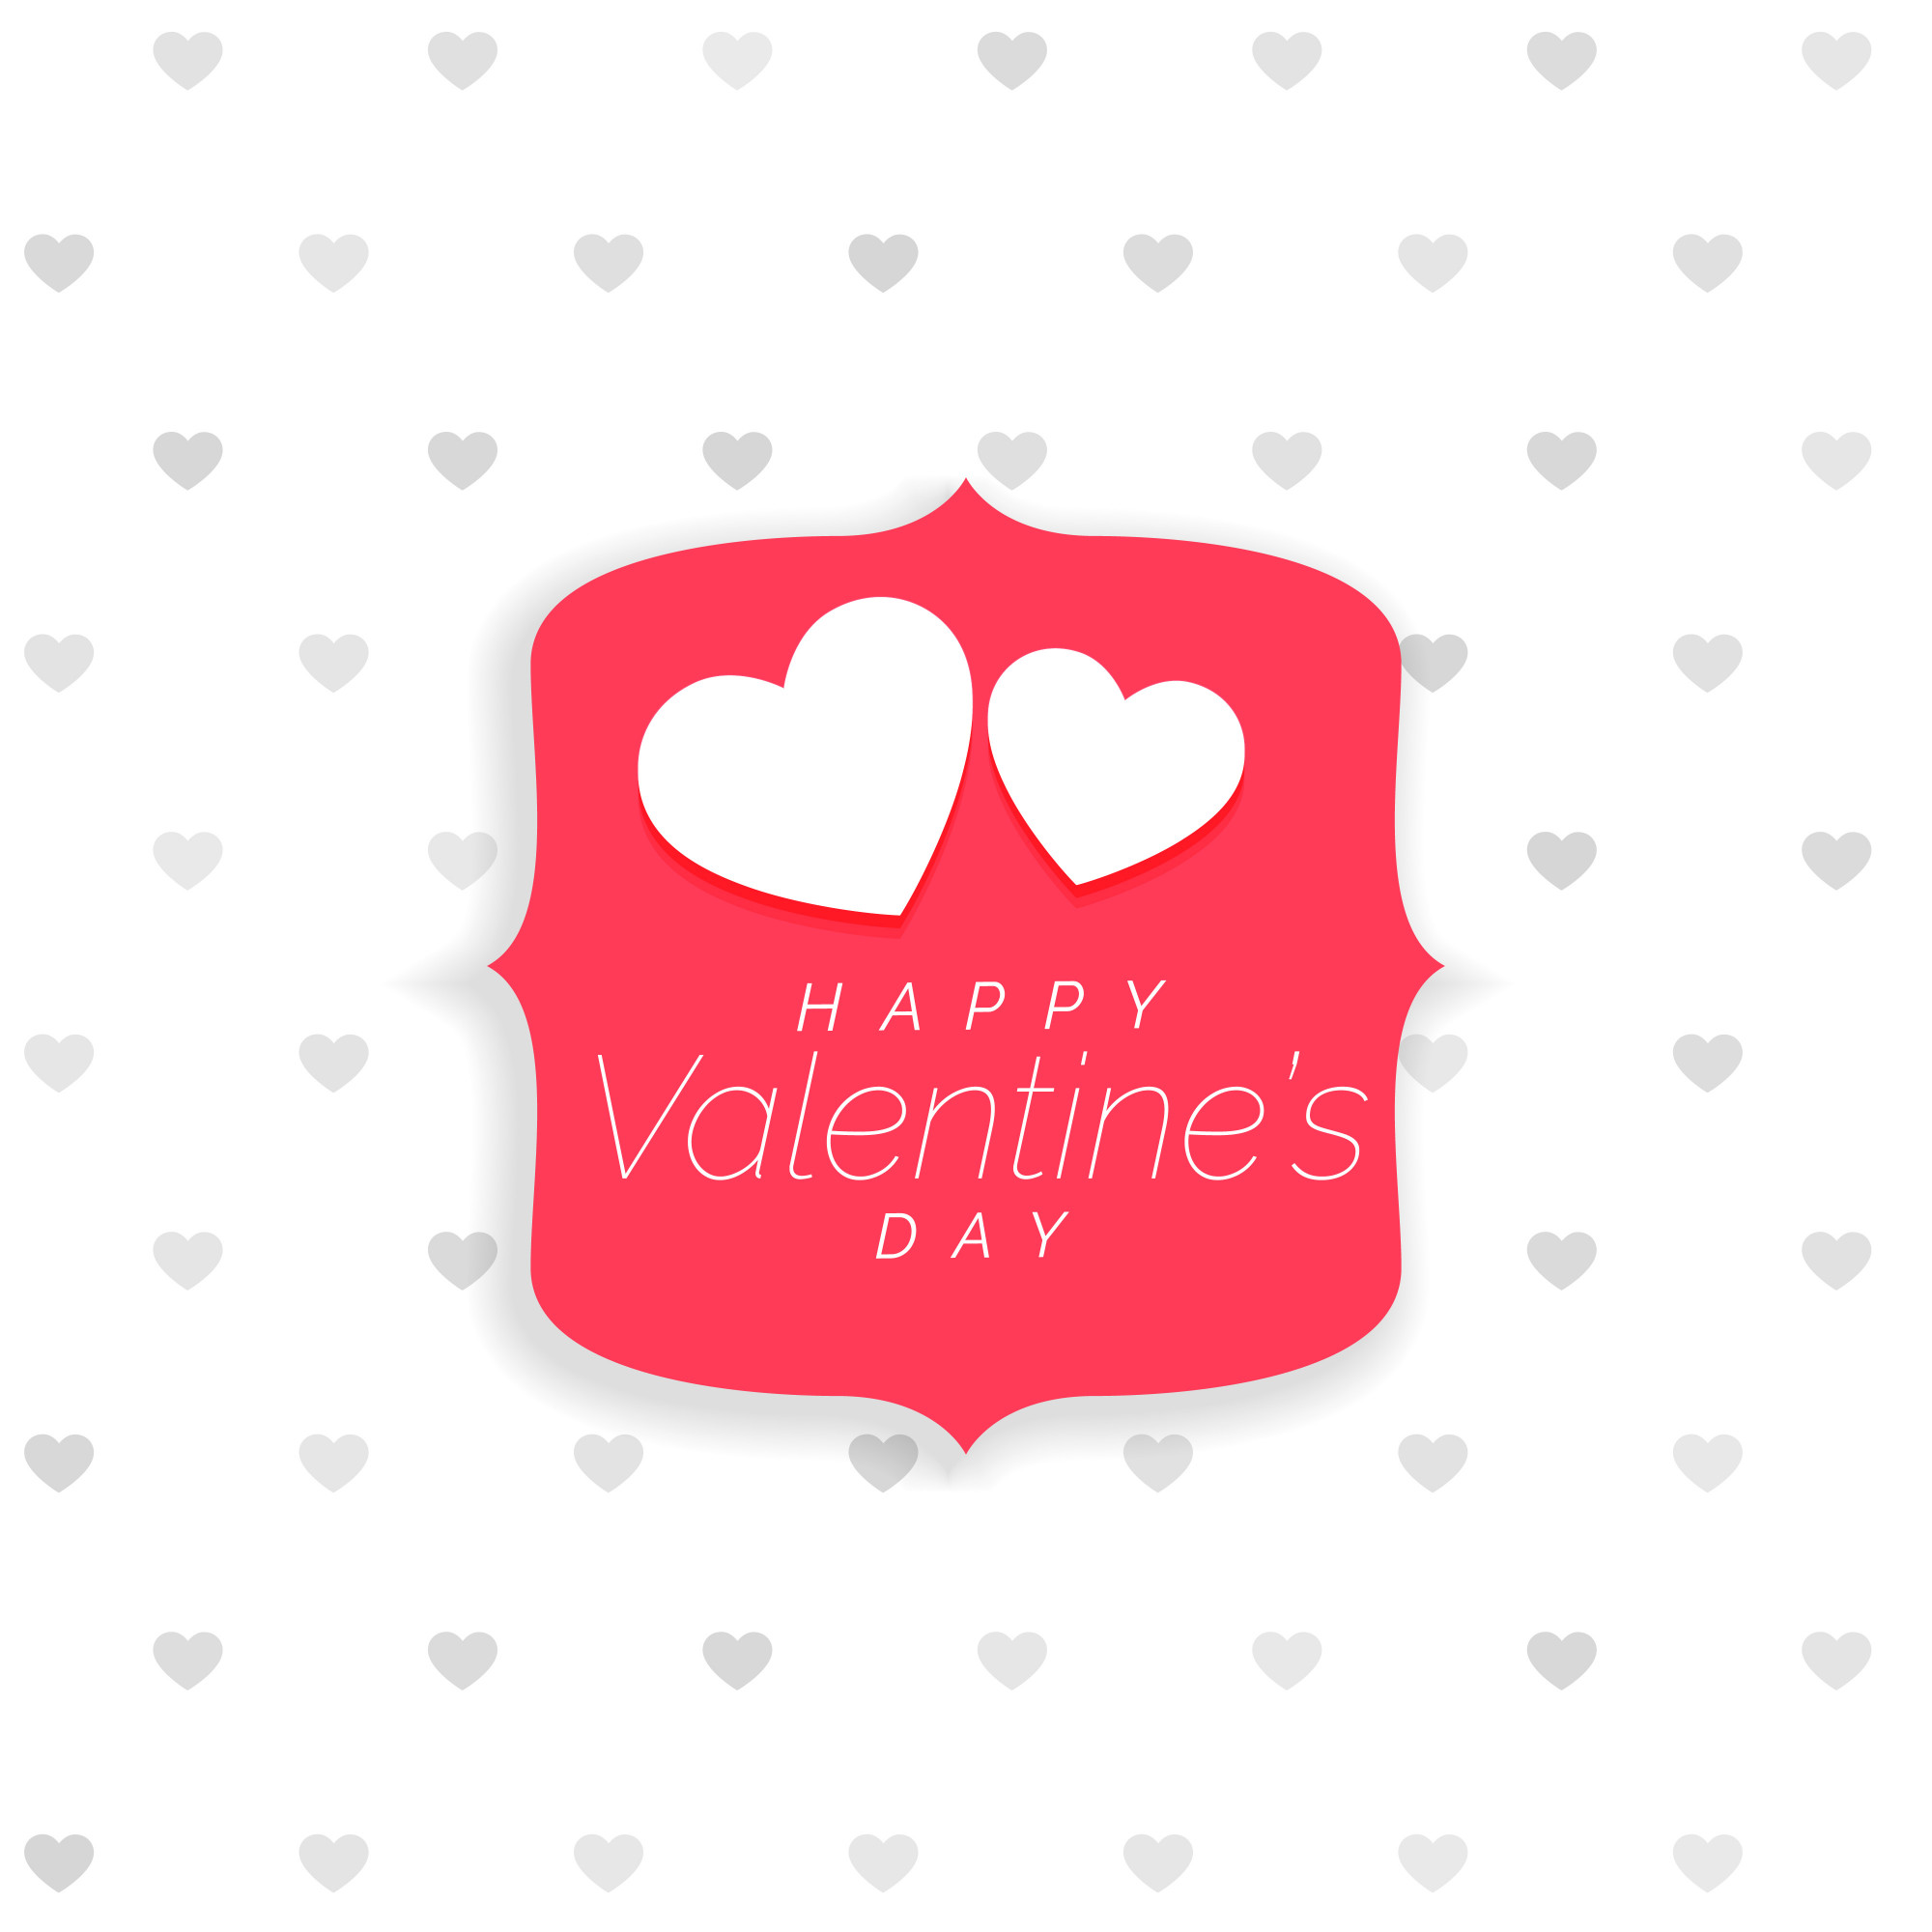 Valentine's day background with hearts pattern and label